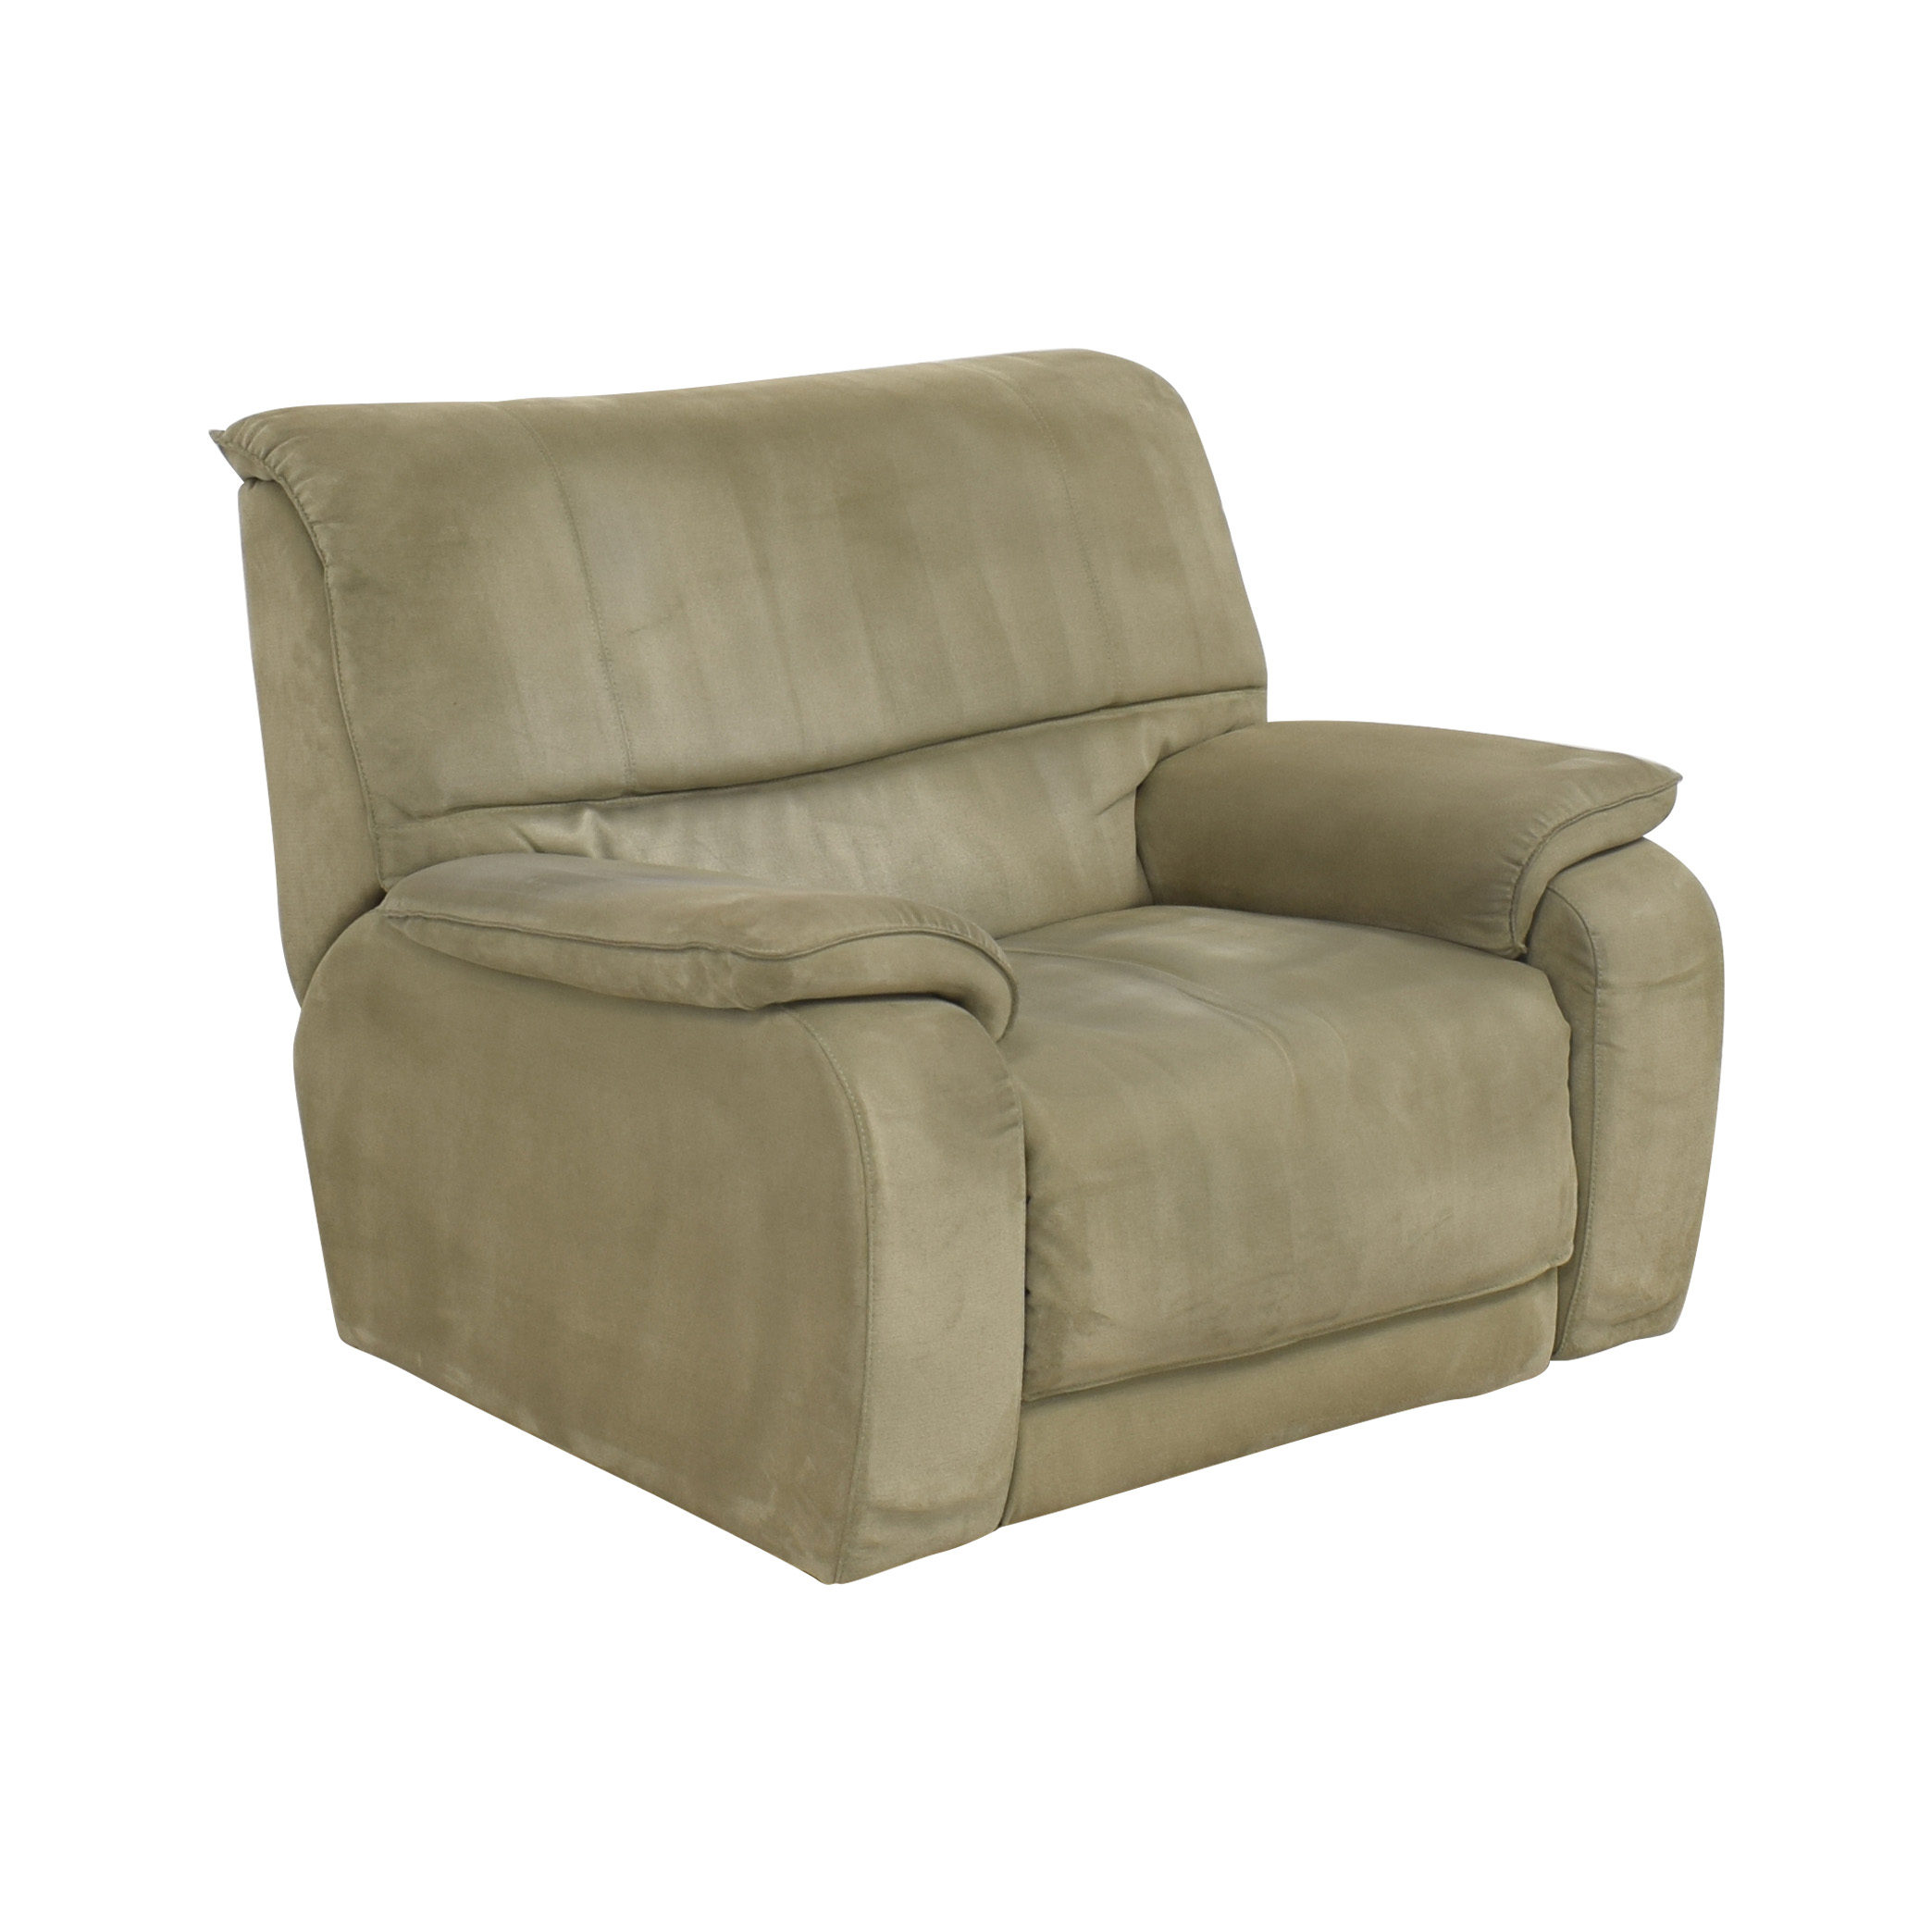 shop Macy's Oversized Recliner Macy's Chairs